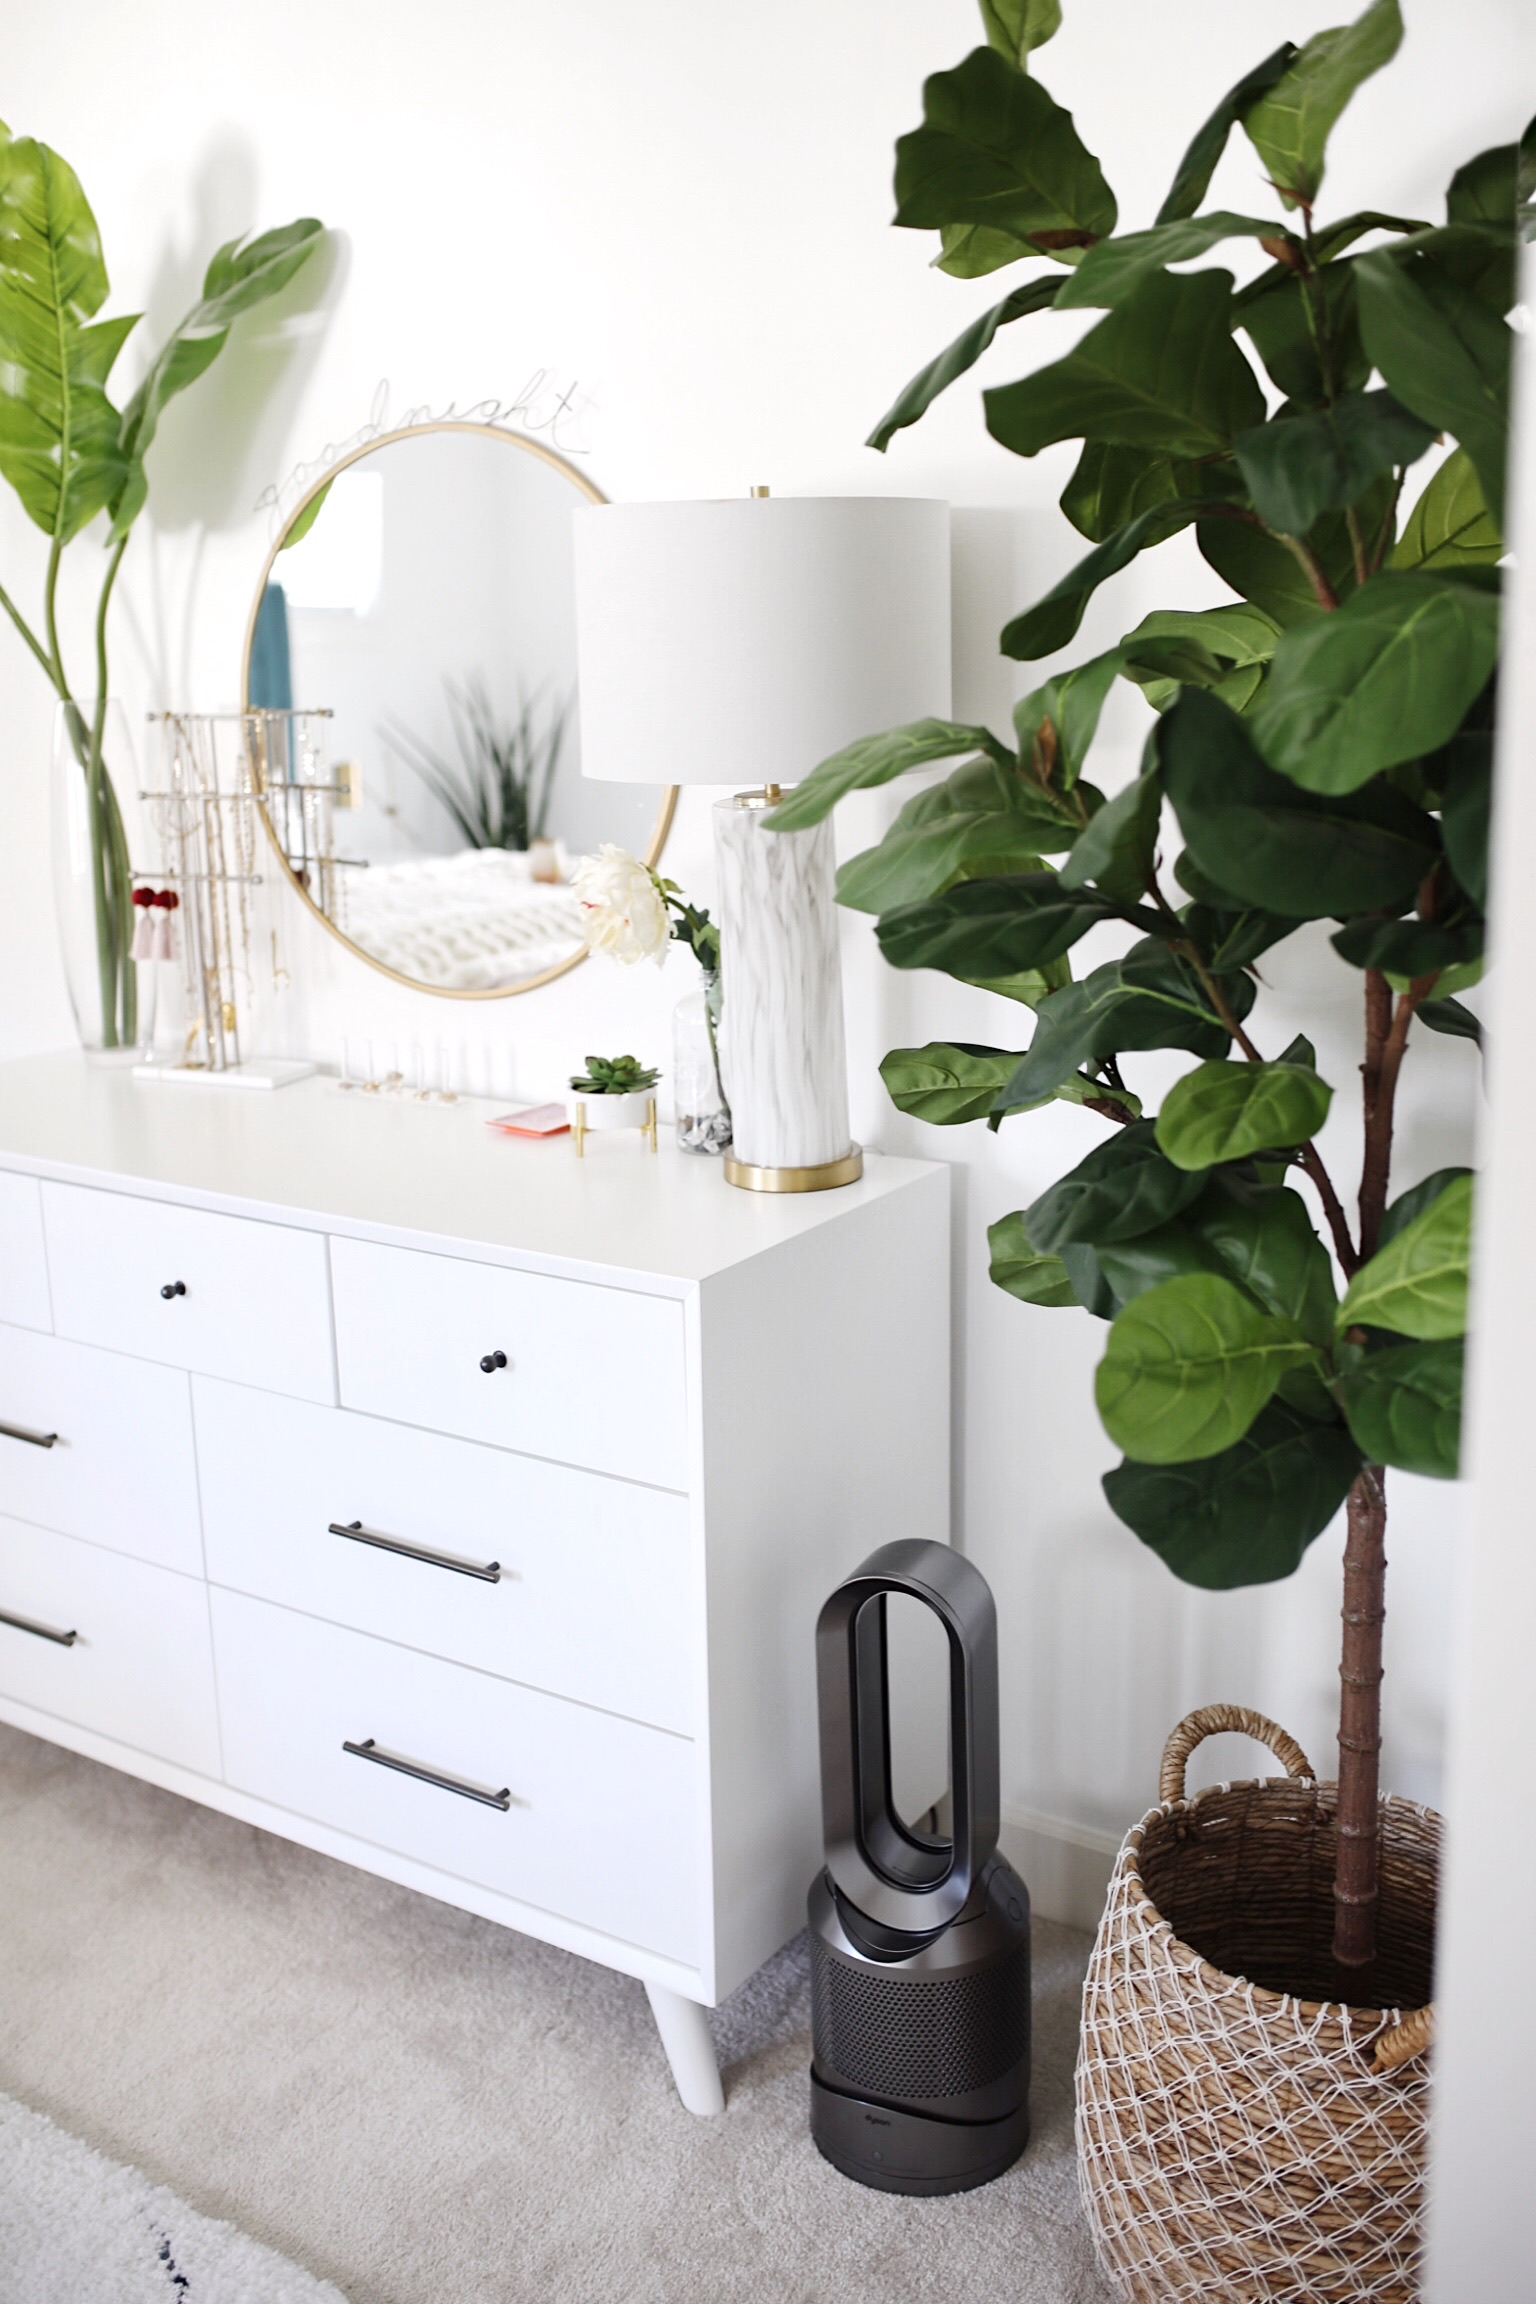 The Best Faux Plants For The Home Where To Buy Them